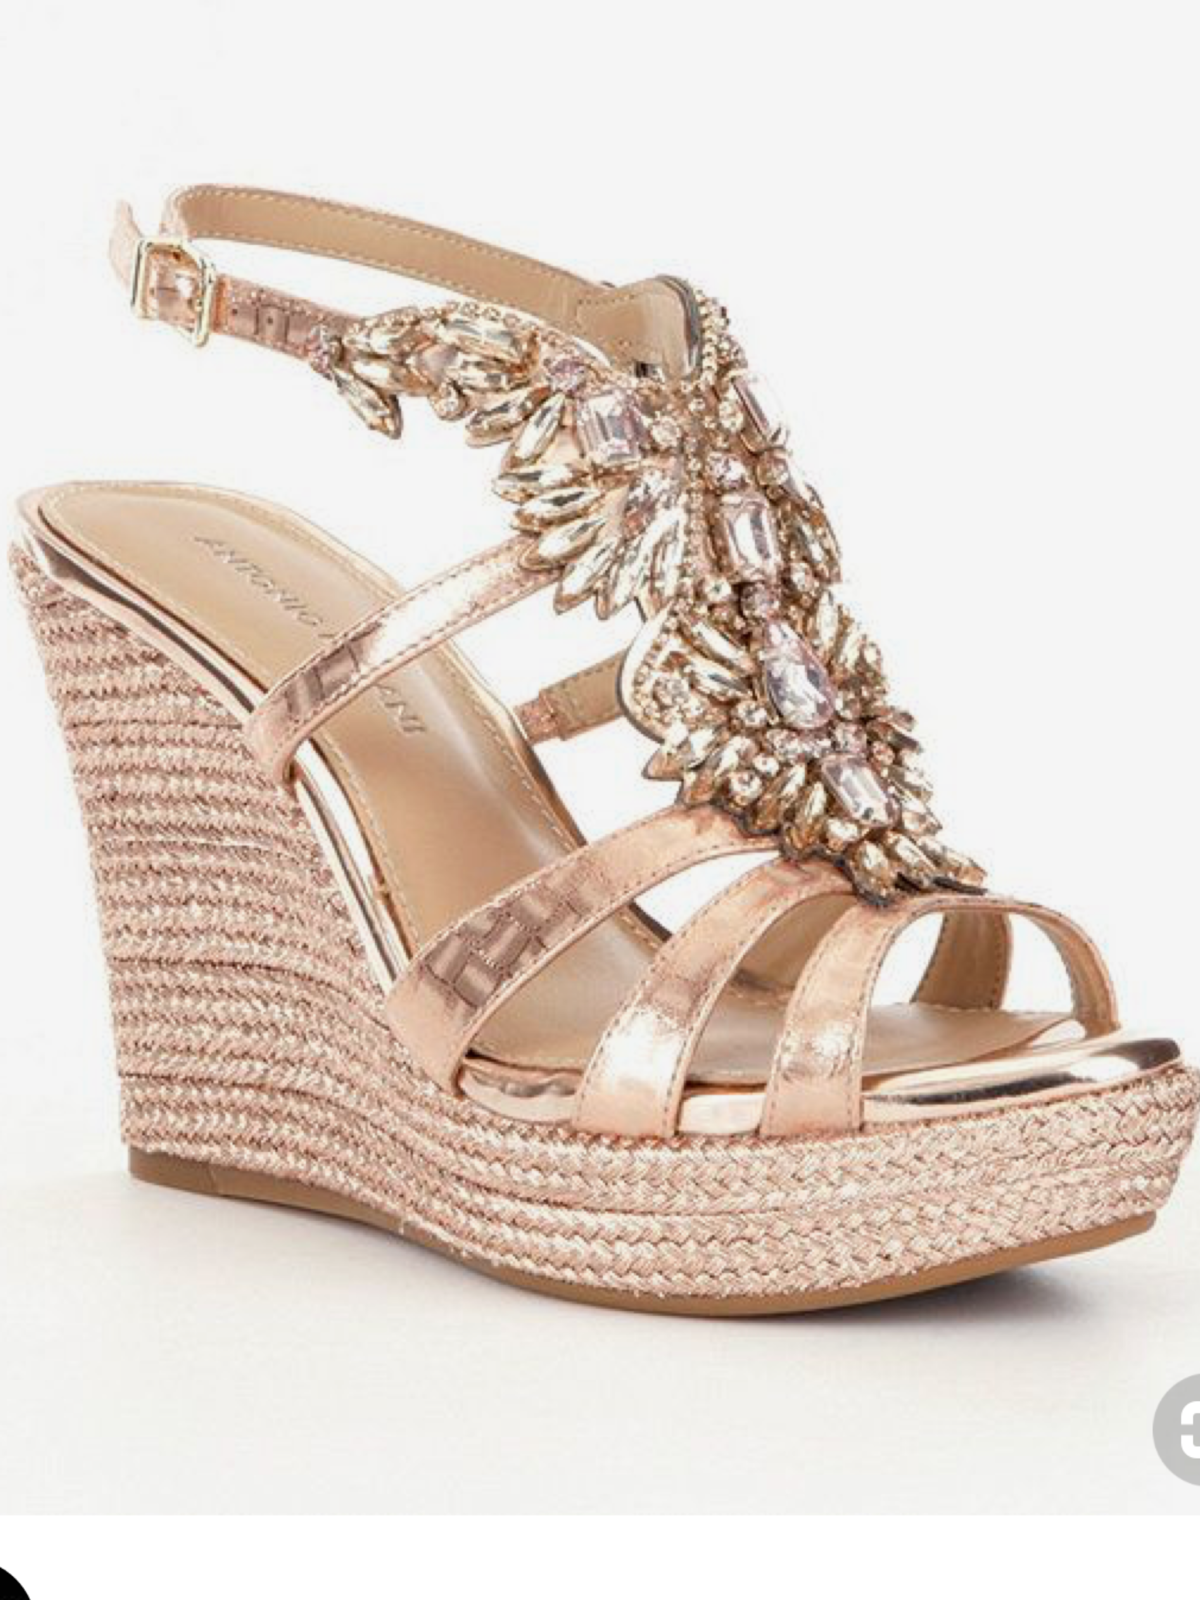 d7820ea5a75 NEW ANTONIO MELANI REENA ROSE GOLD RHINESTONE WEDDING BRIDAL GALA WEDGES 8.5